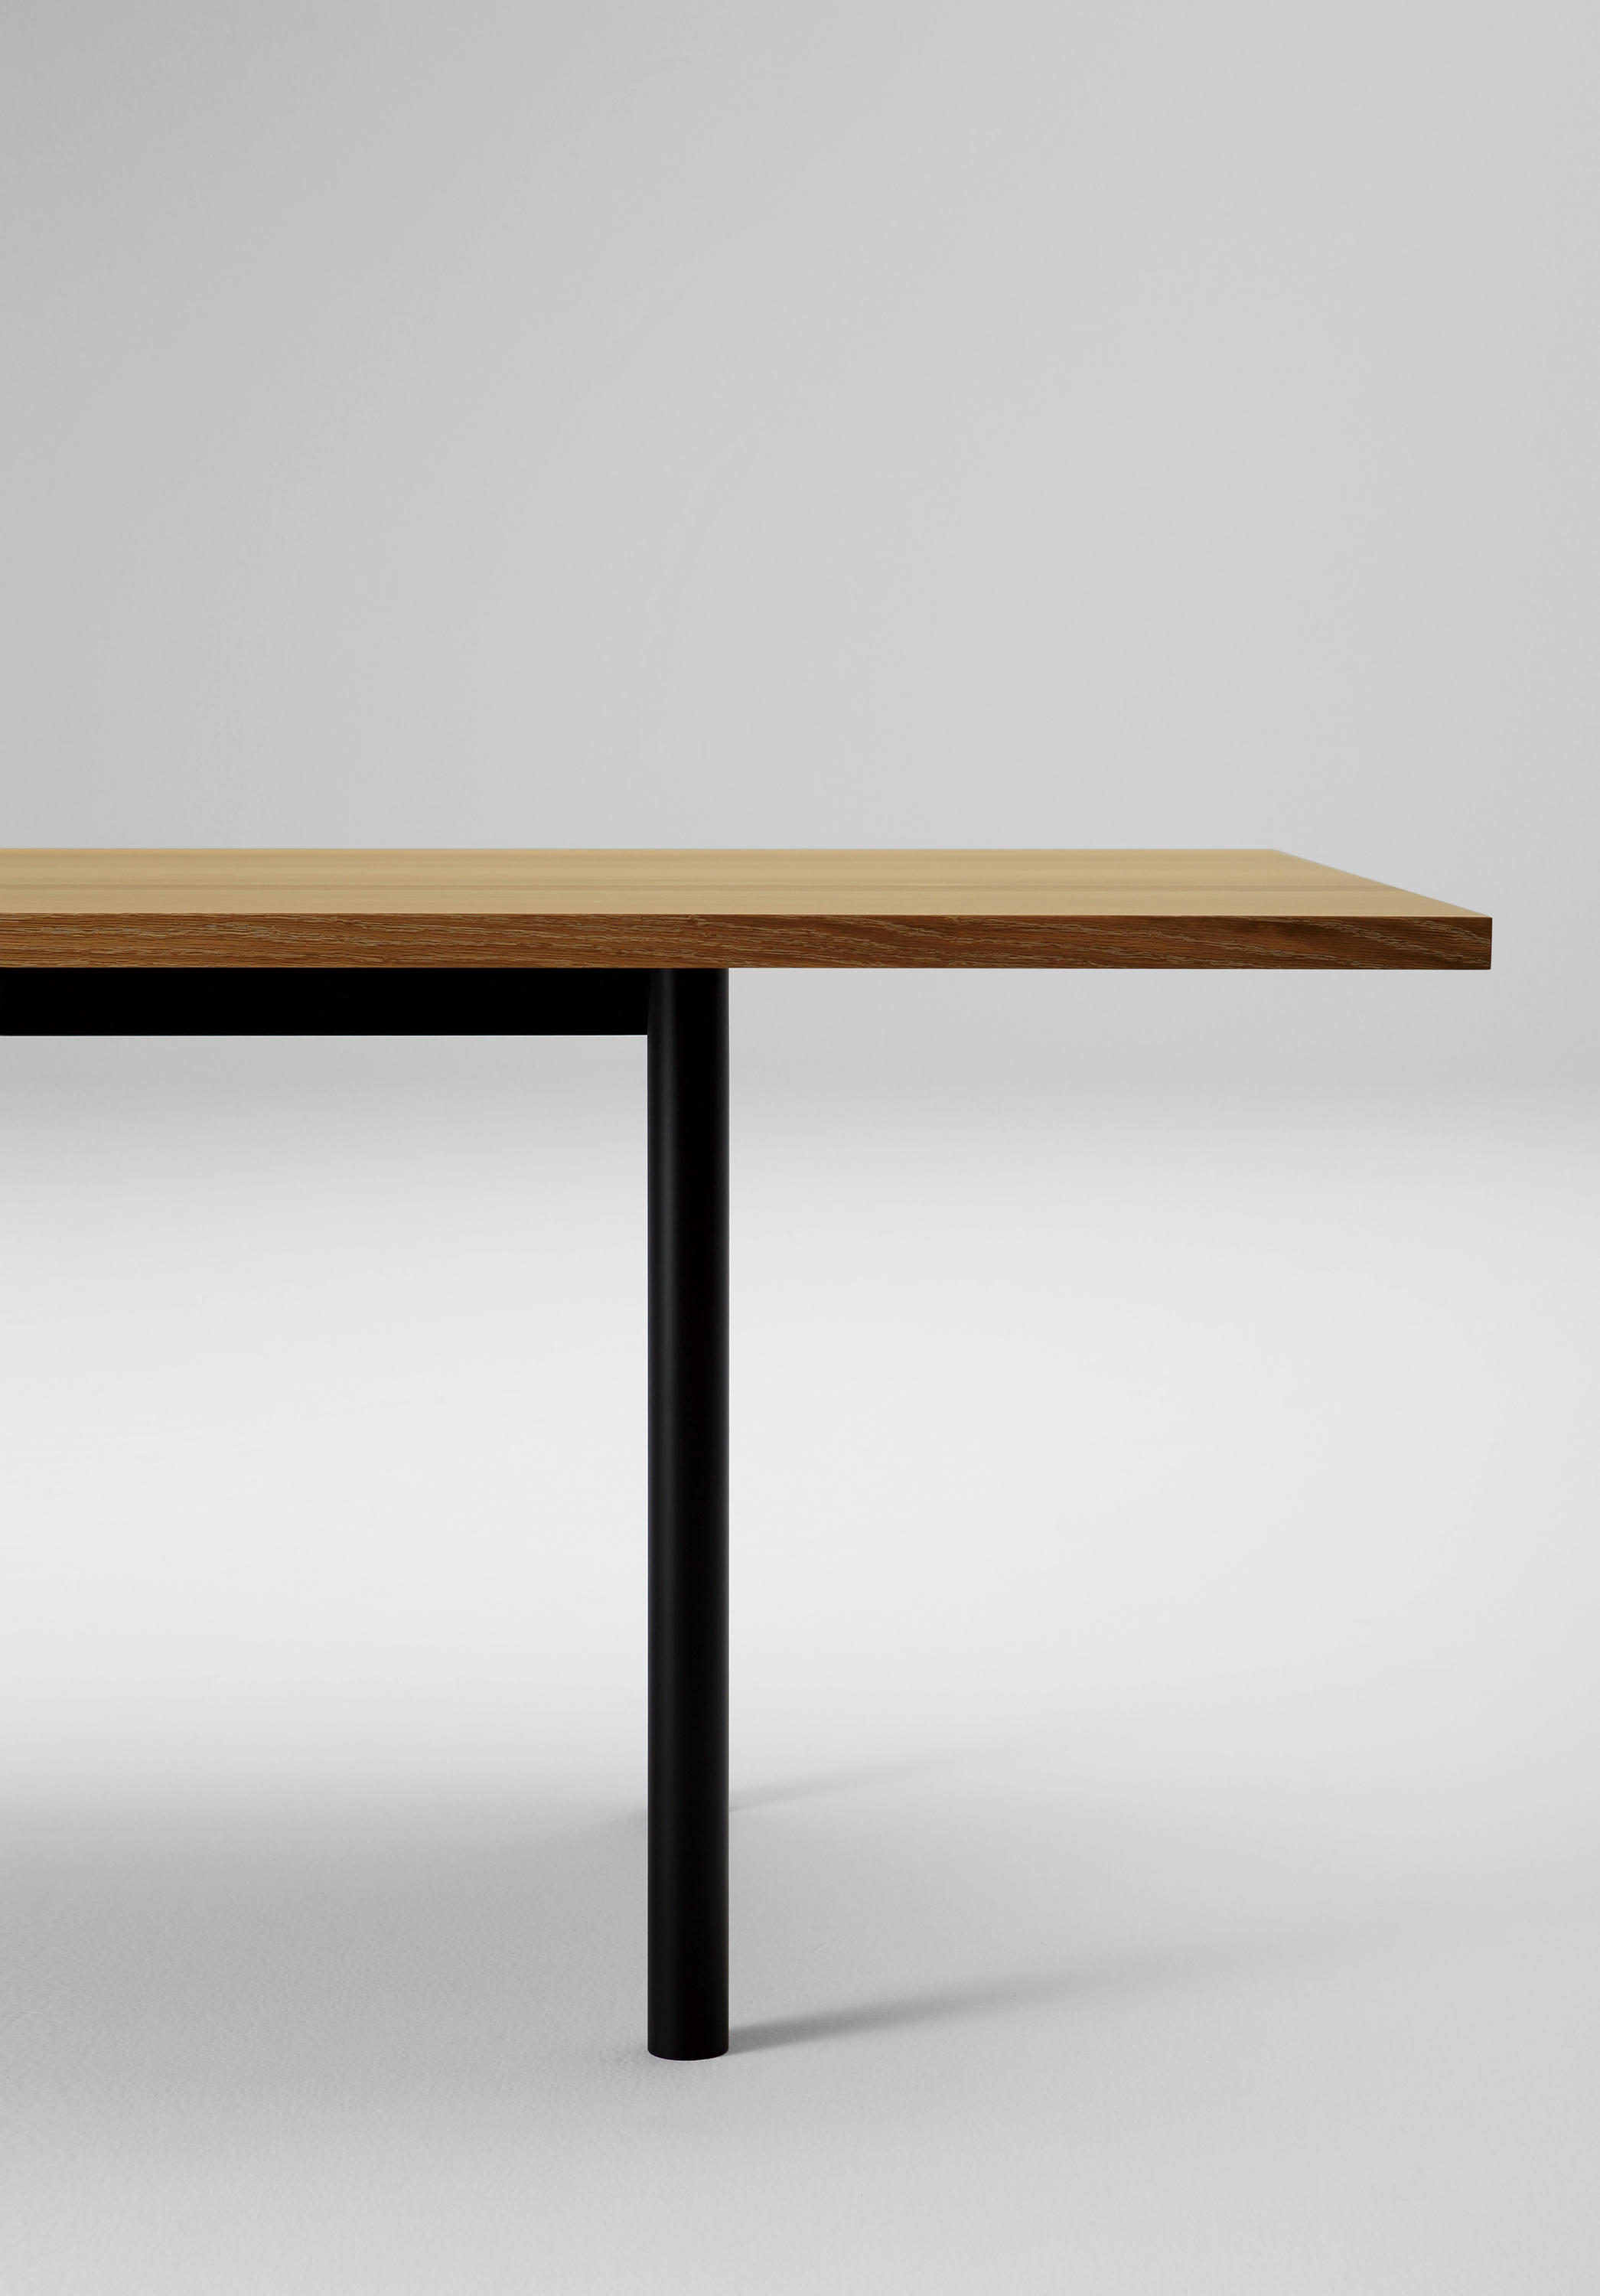 Malta Steel Leg Table 320 Low By Maruni